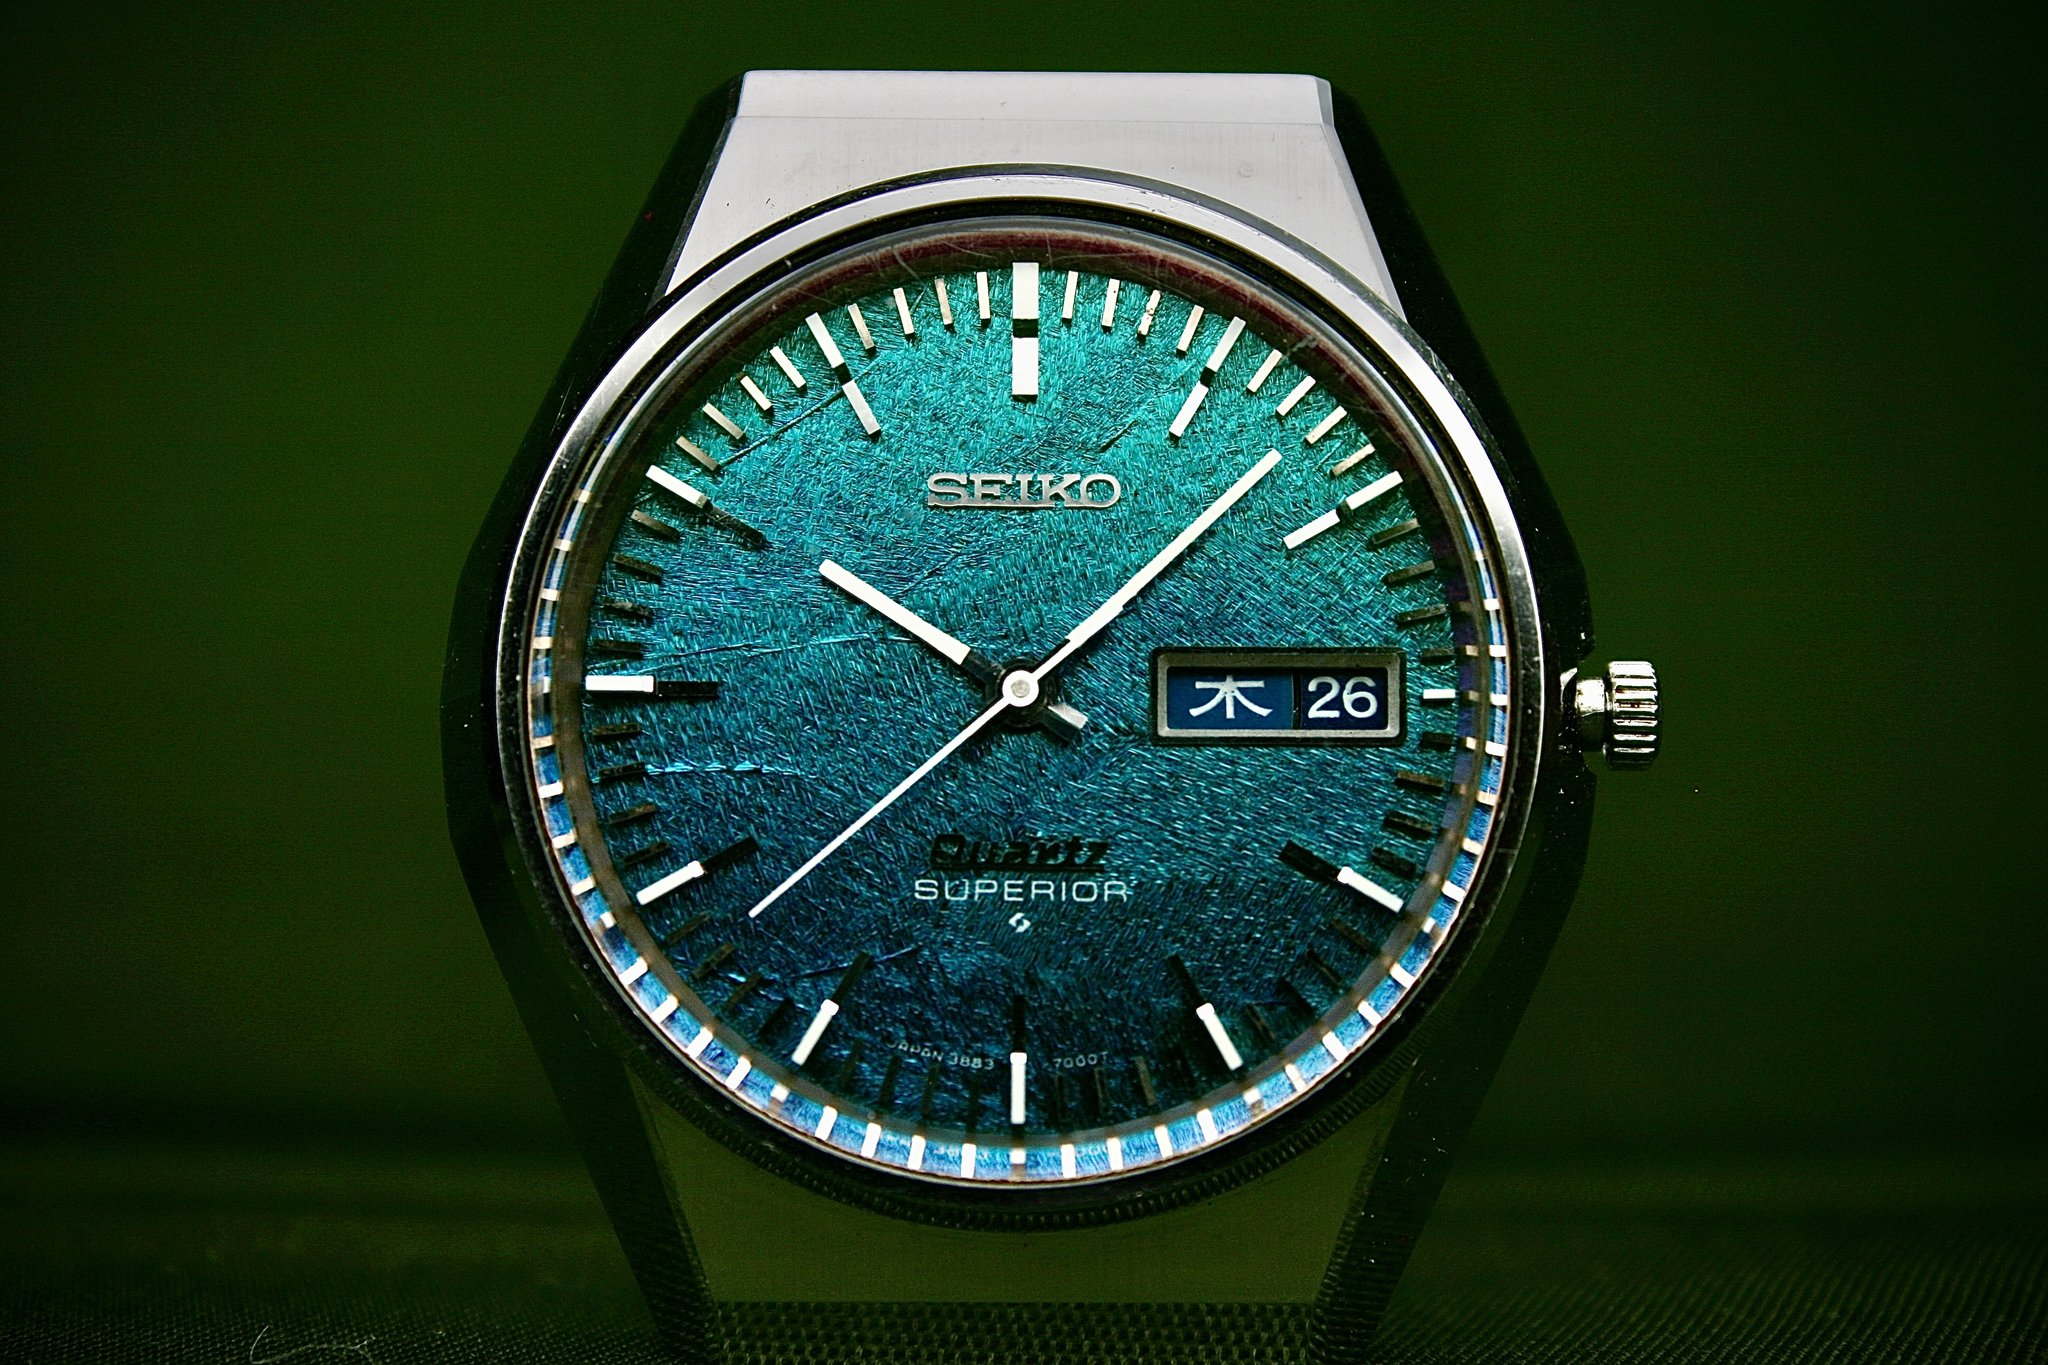 Buying Guide: The Best Seiko Watches From The 1970s